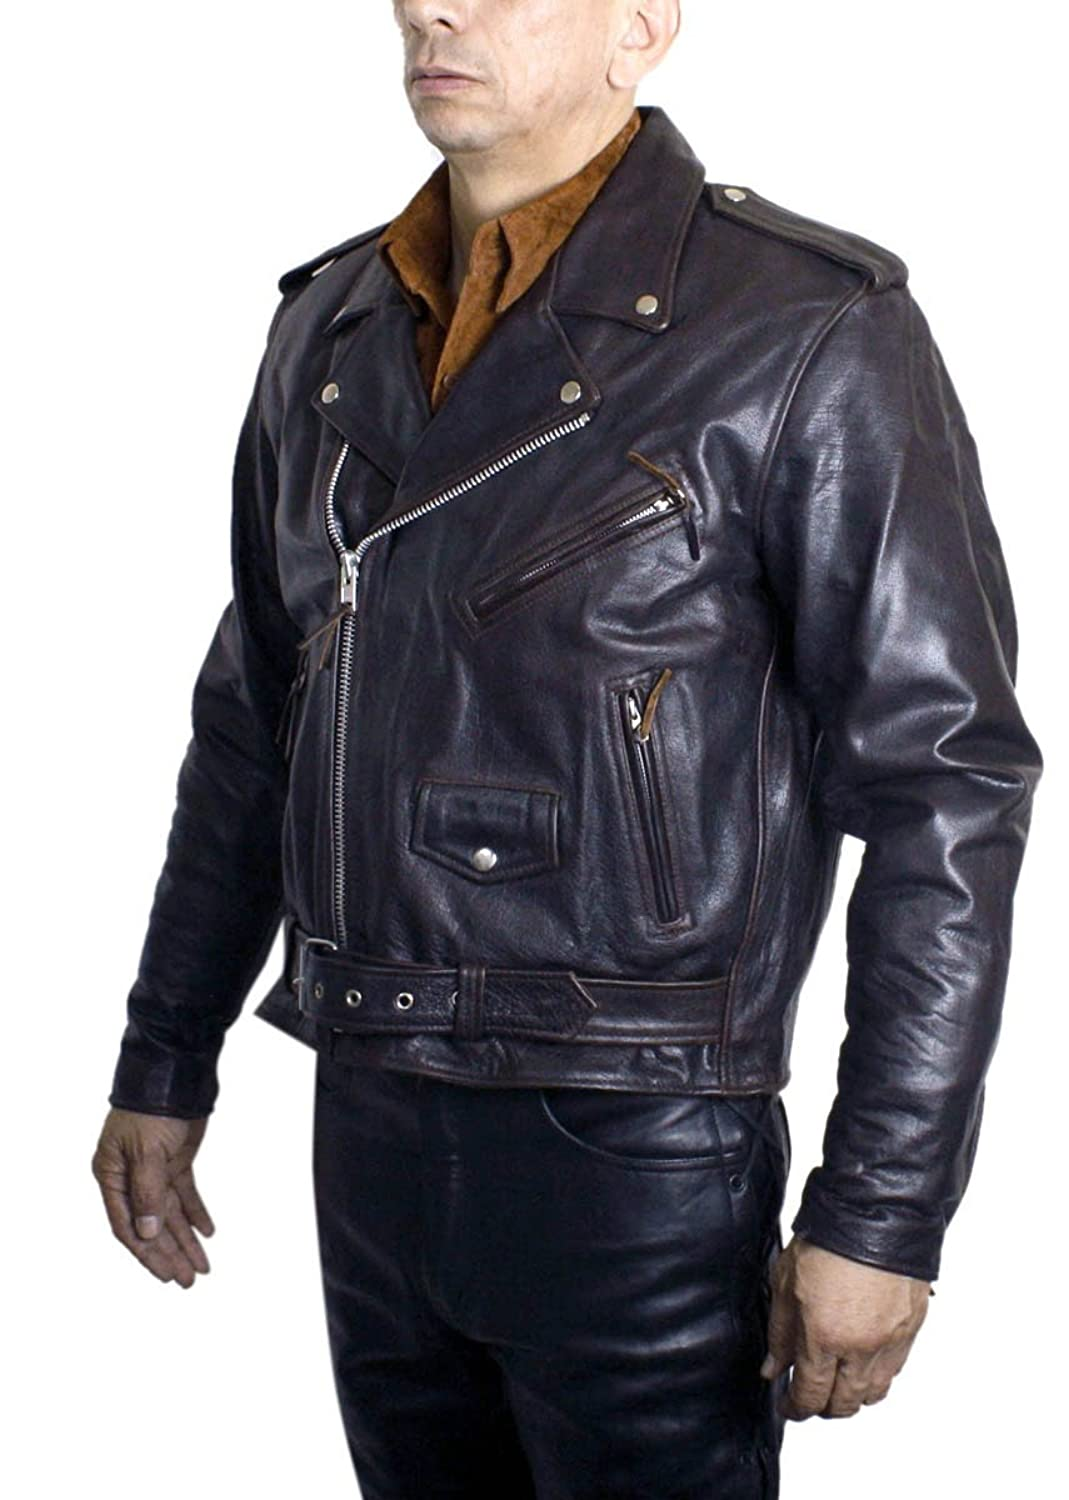 Men's Vintage Style Coats and Jackets Mens Basic Motorcycle Jacket Genuine Soft Buffalo Leather Brown Retro Biker 402 $169.99 AT vintagedancer.com